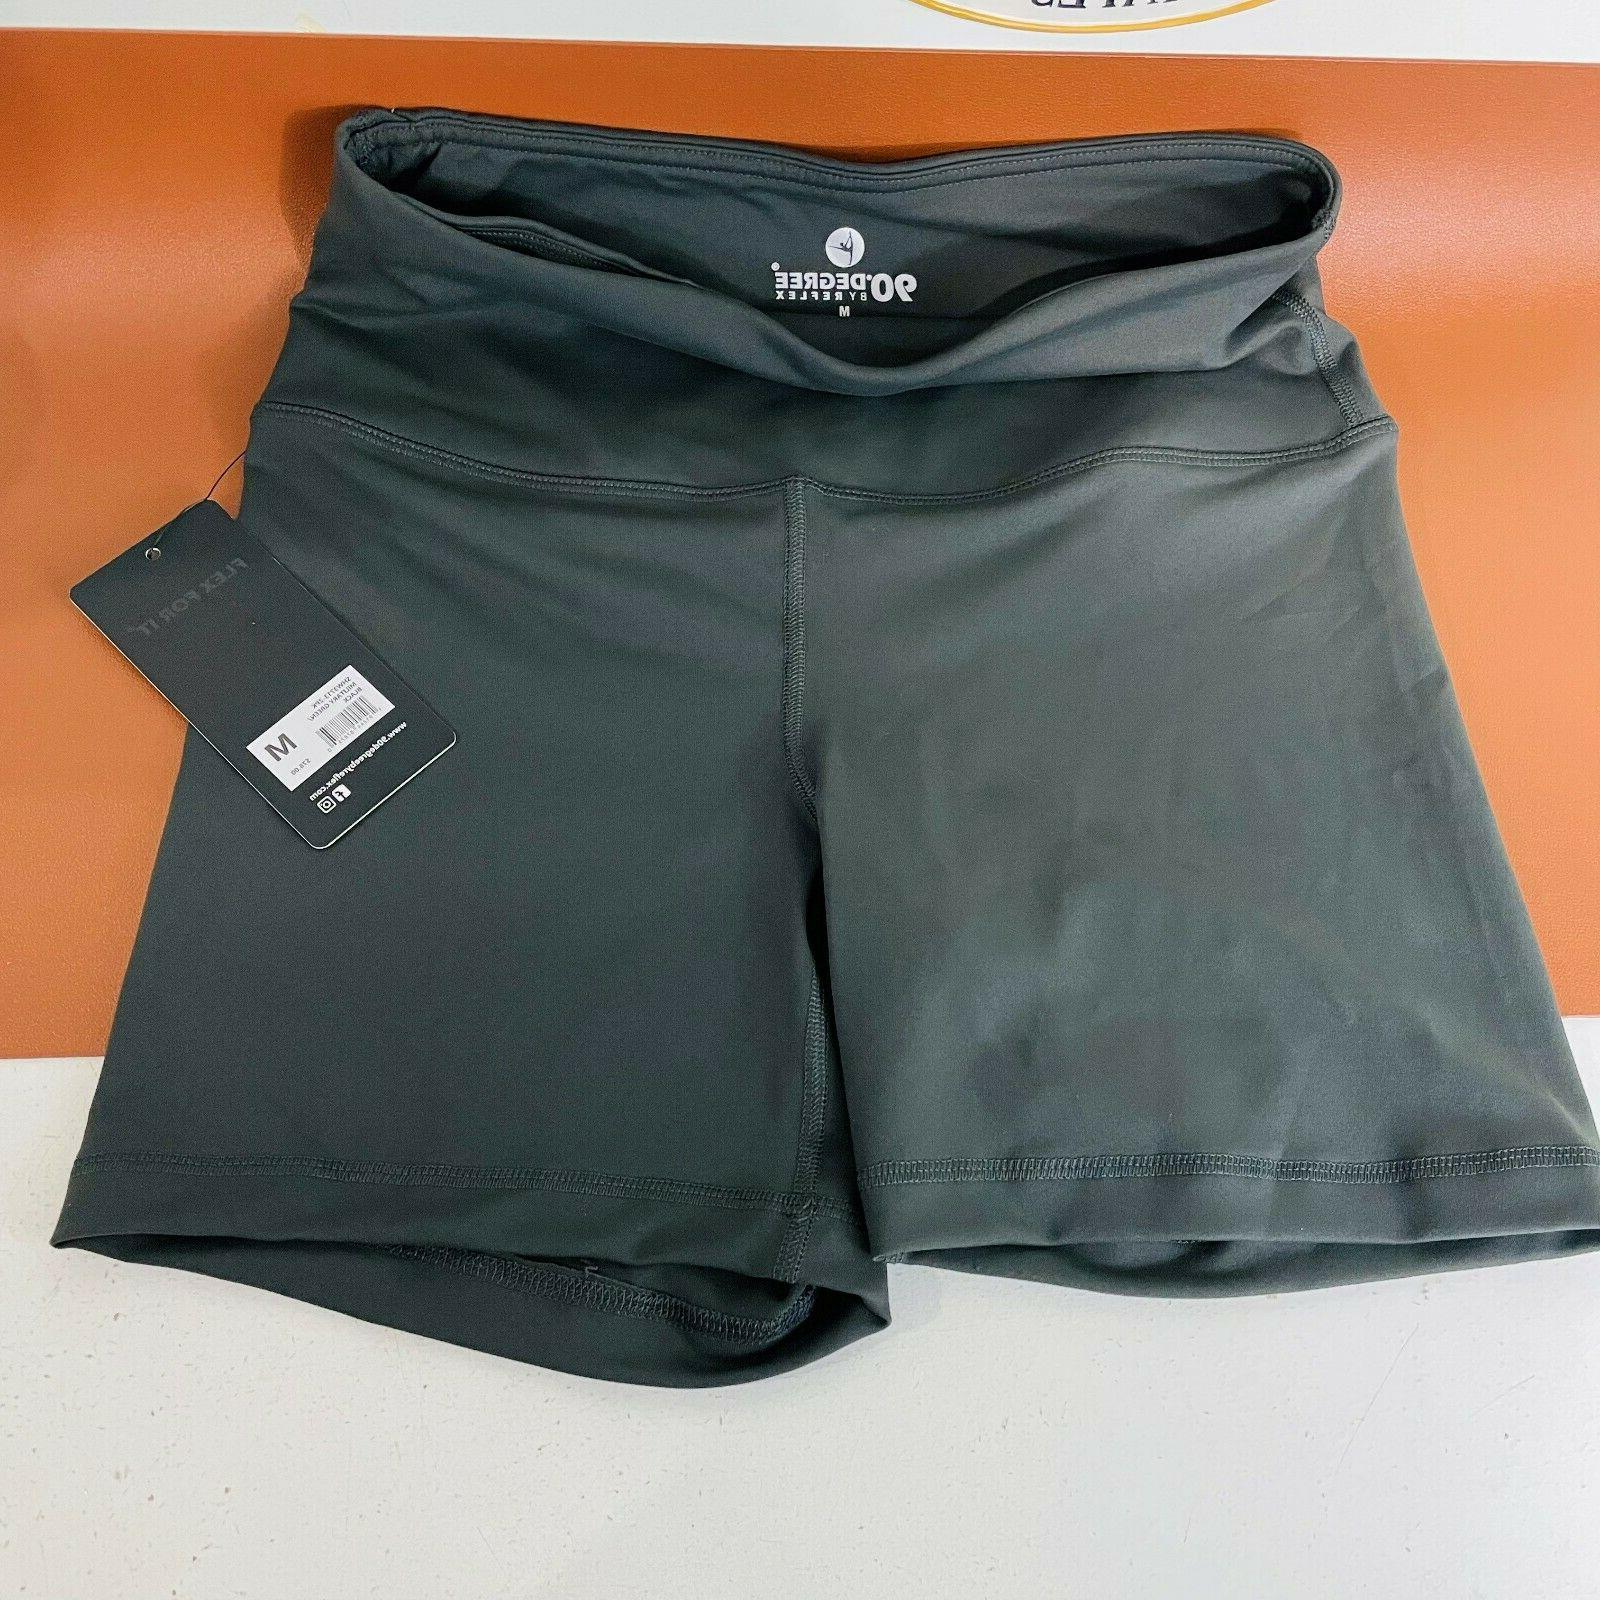 high waist power flex yoga shorts tummy